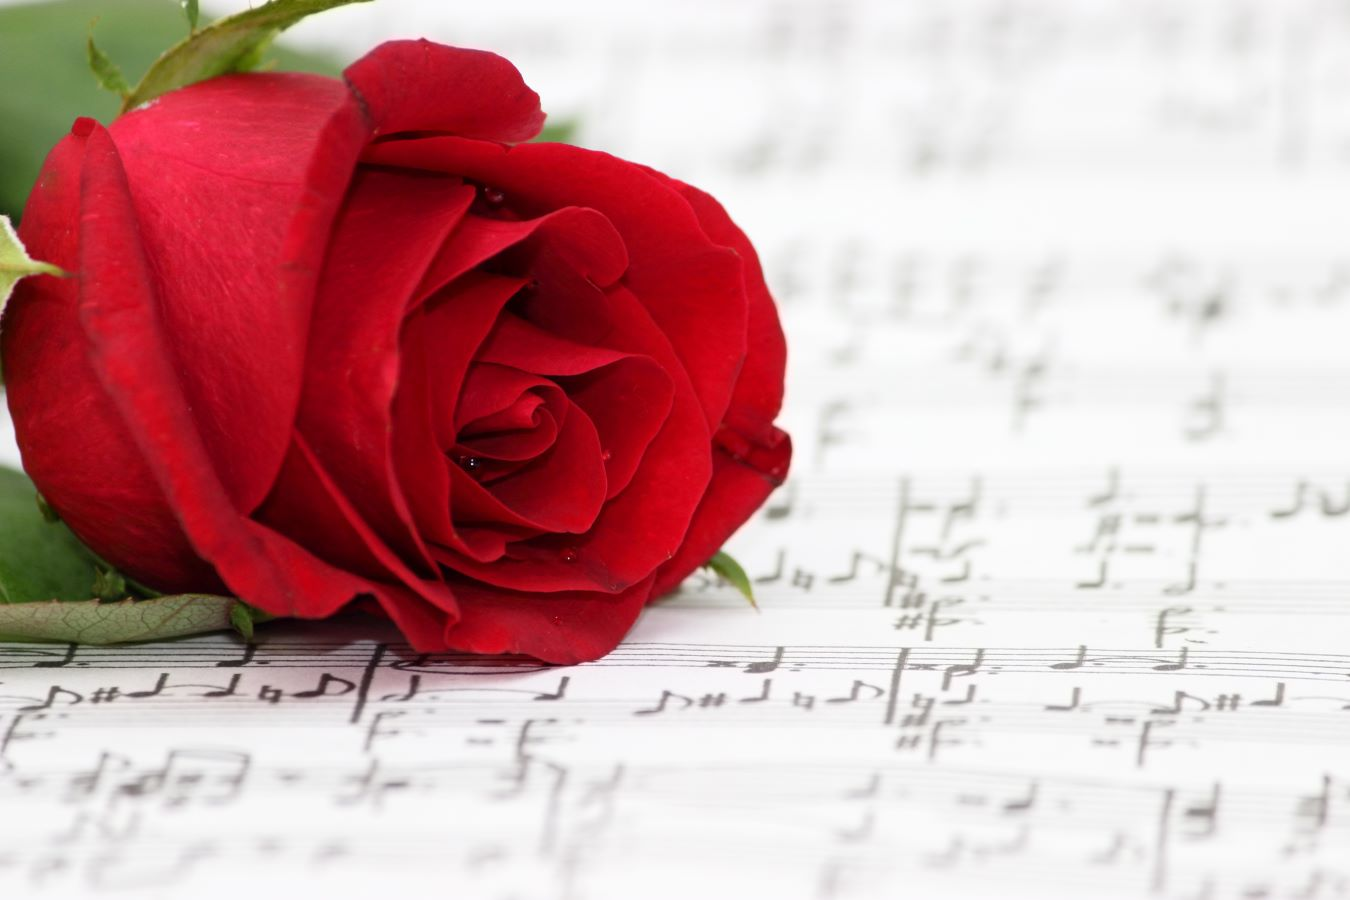 Rose accompanying a music sheet.